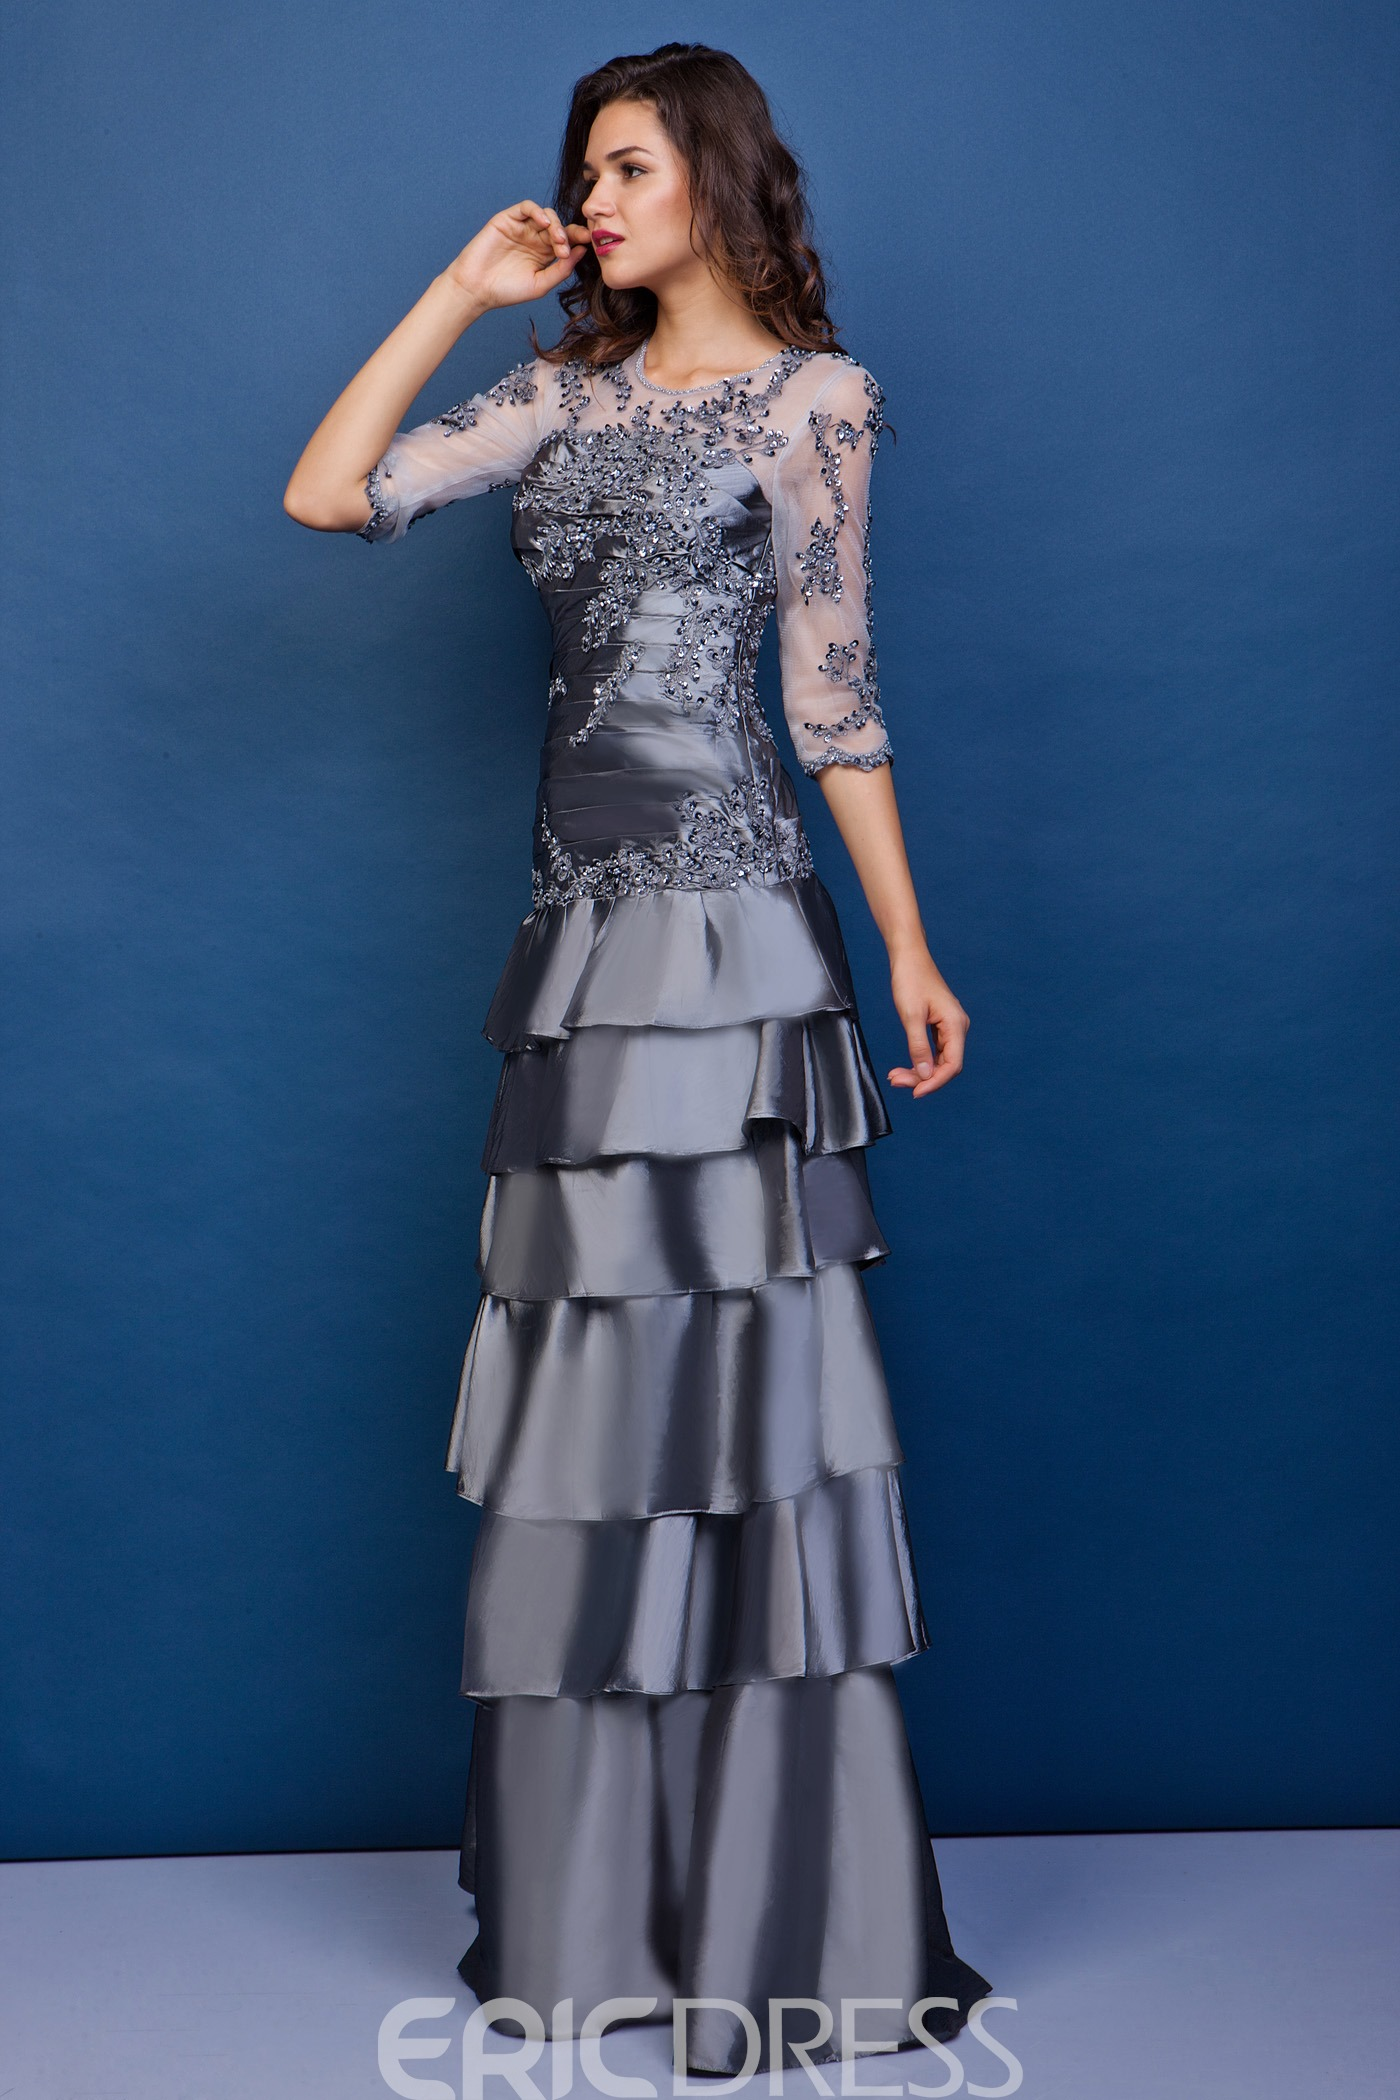 Graceful Lace Tiered Sheath Round Neckline Half Sleeves Floor-Length Juliana's Mother of the Bride Dress